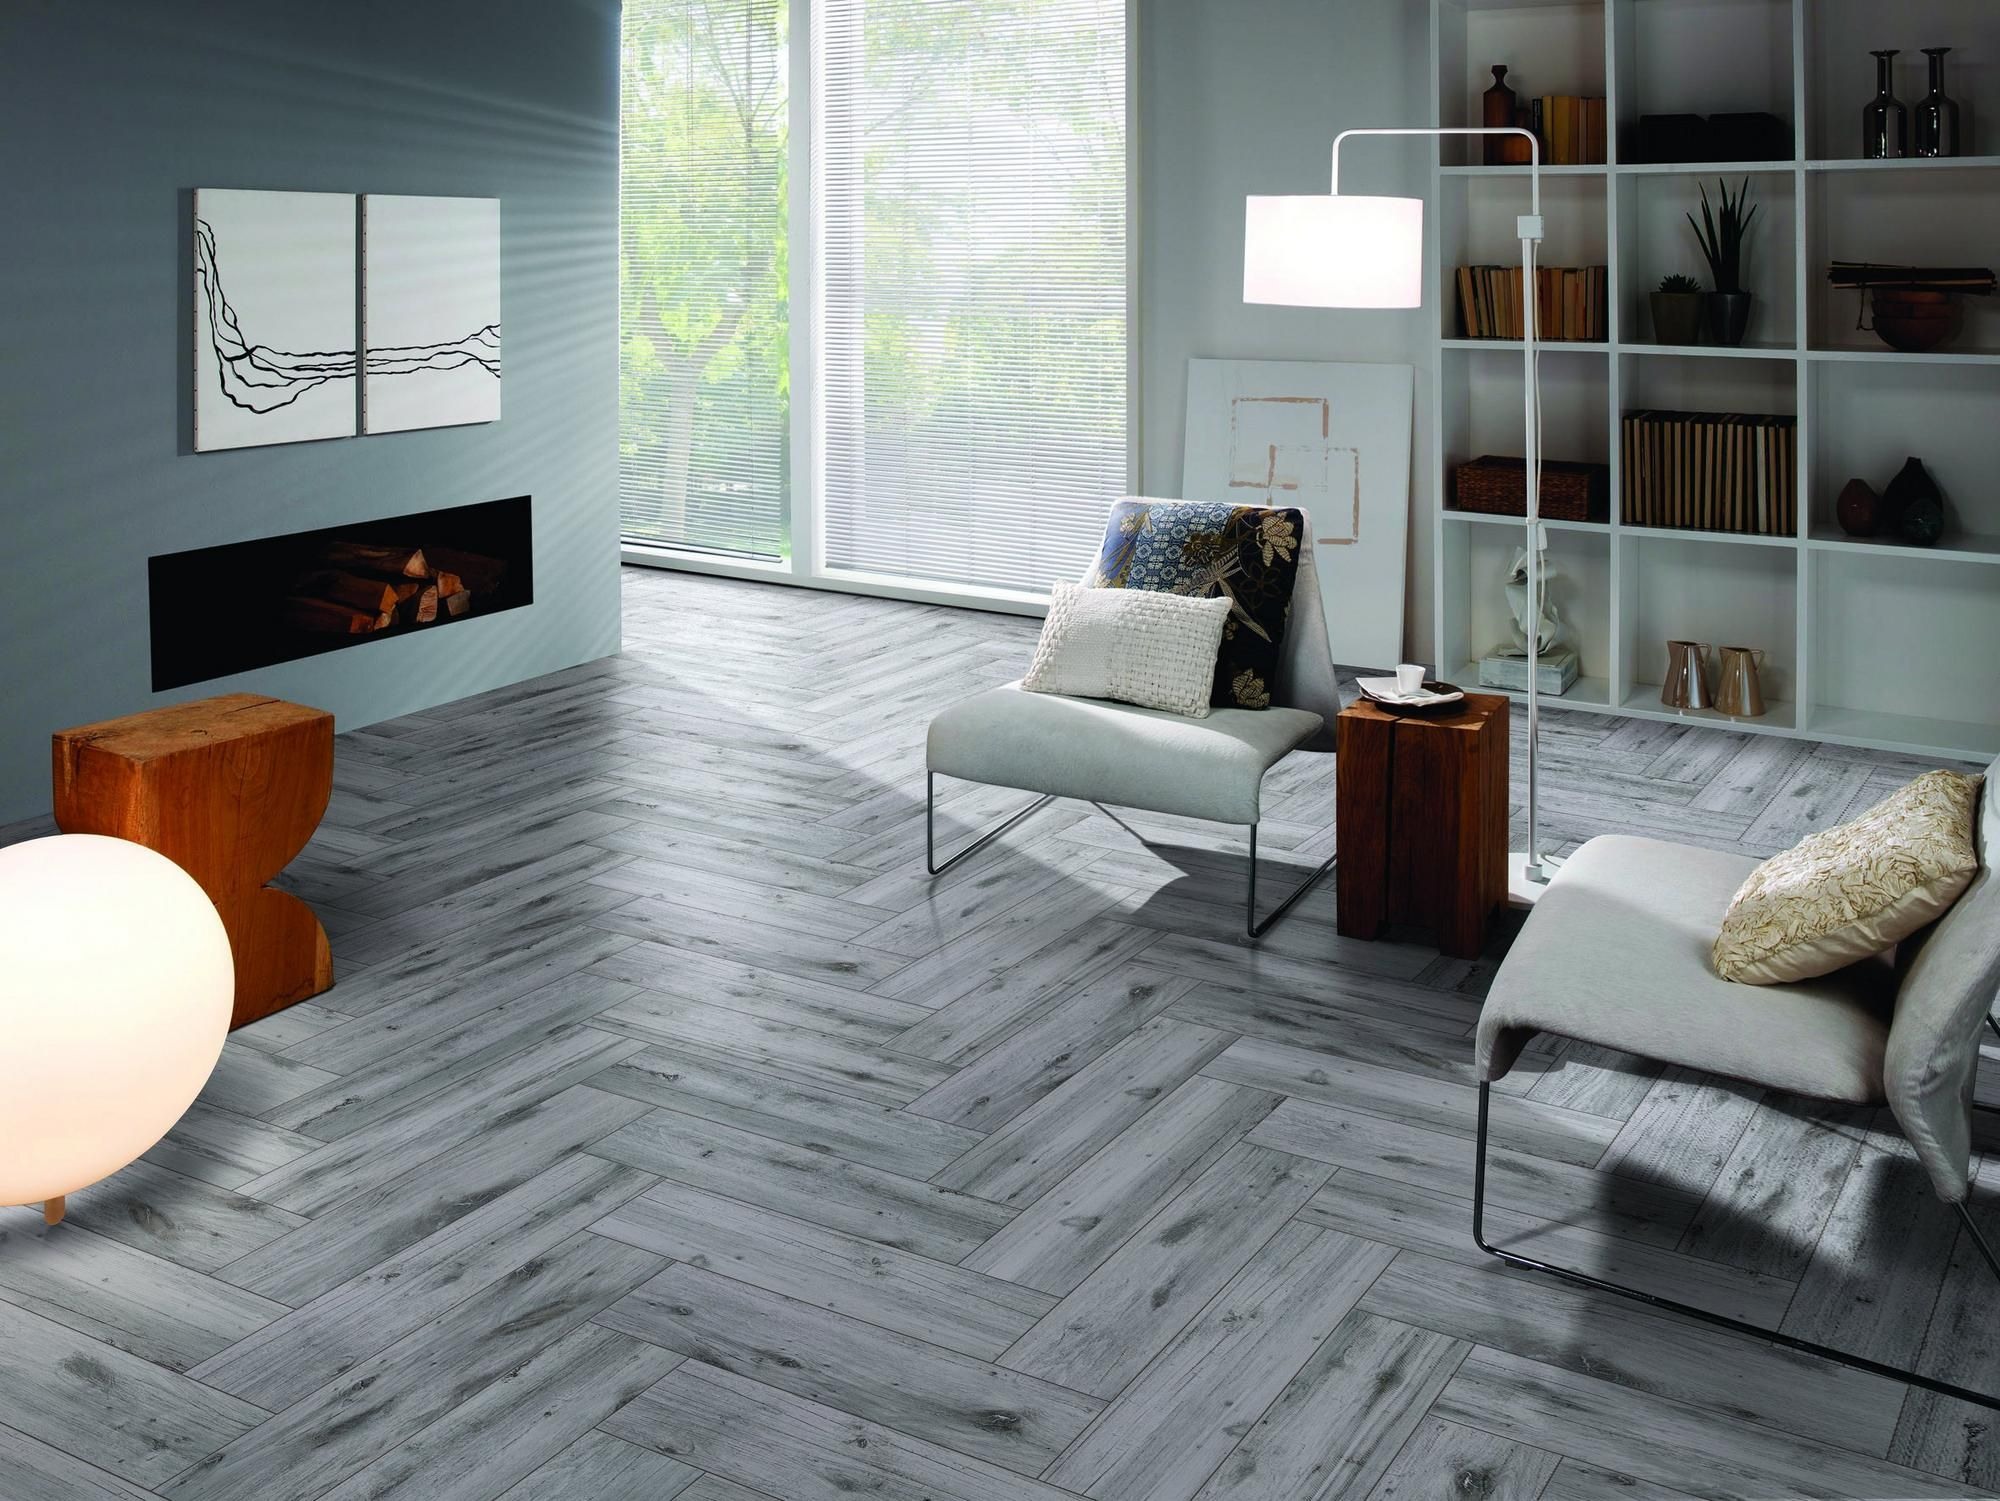 mansfield ash wood plank porcelain tile - 6in. x 24in. - 100156611